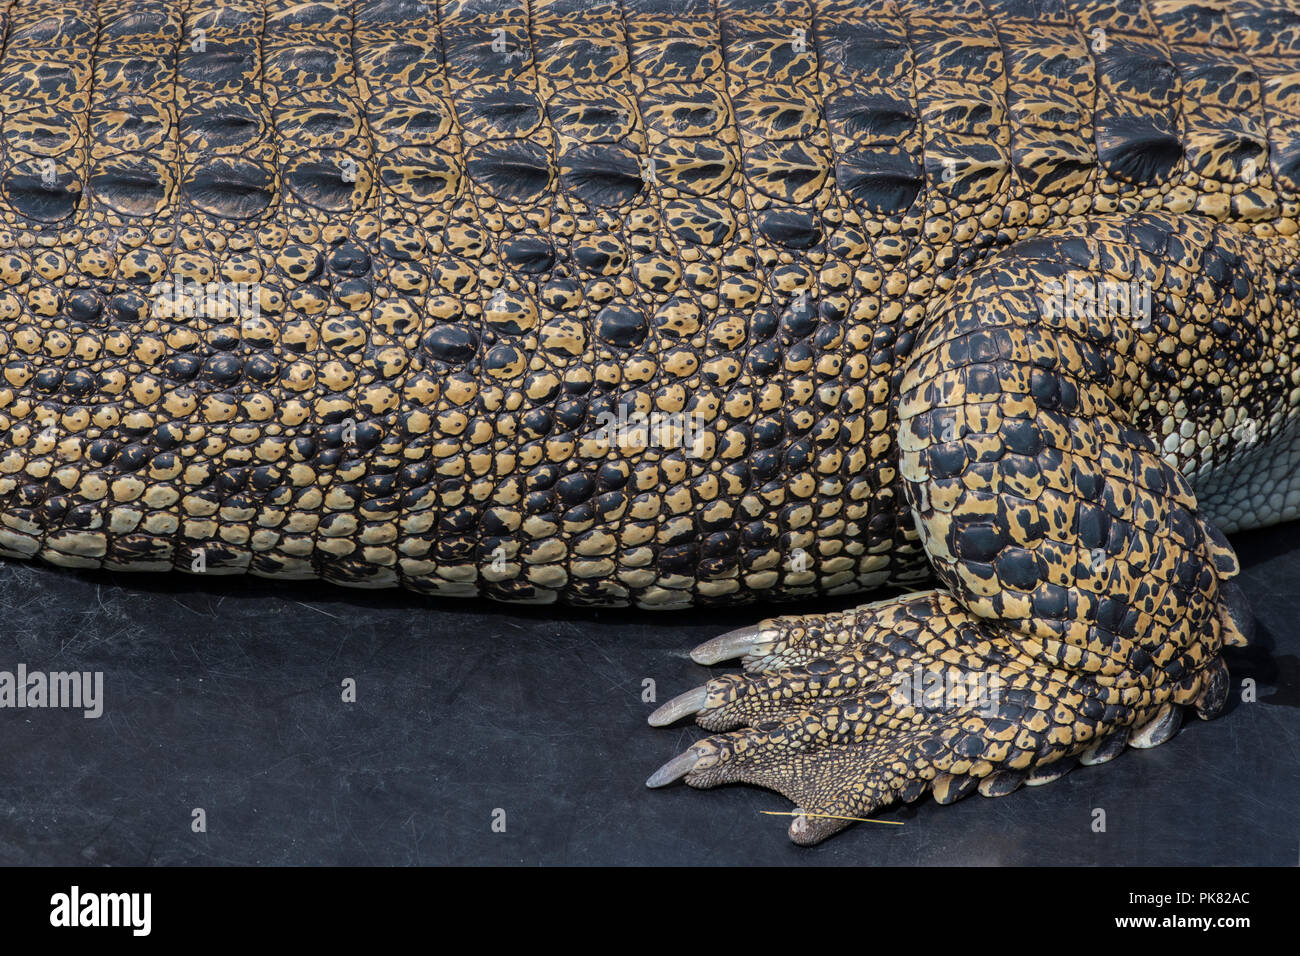 Australia, Northern Territory. Saltwater crocodile aka Saltie (Crocodylus porosus) body and foot detail. - Stock Image